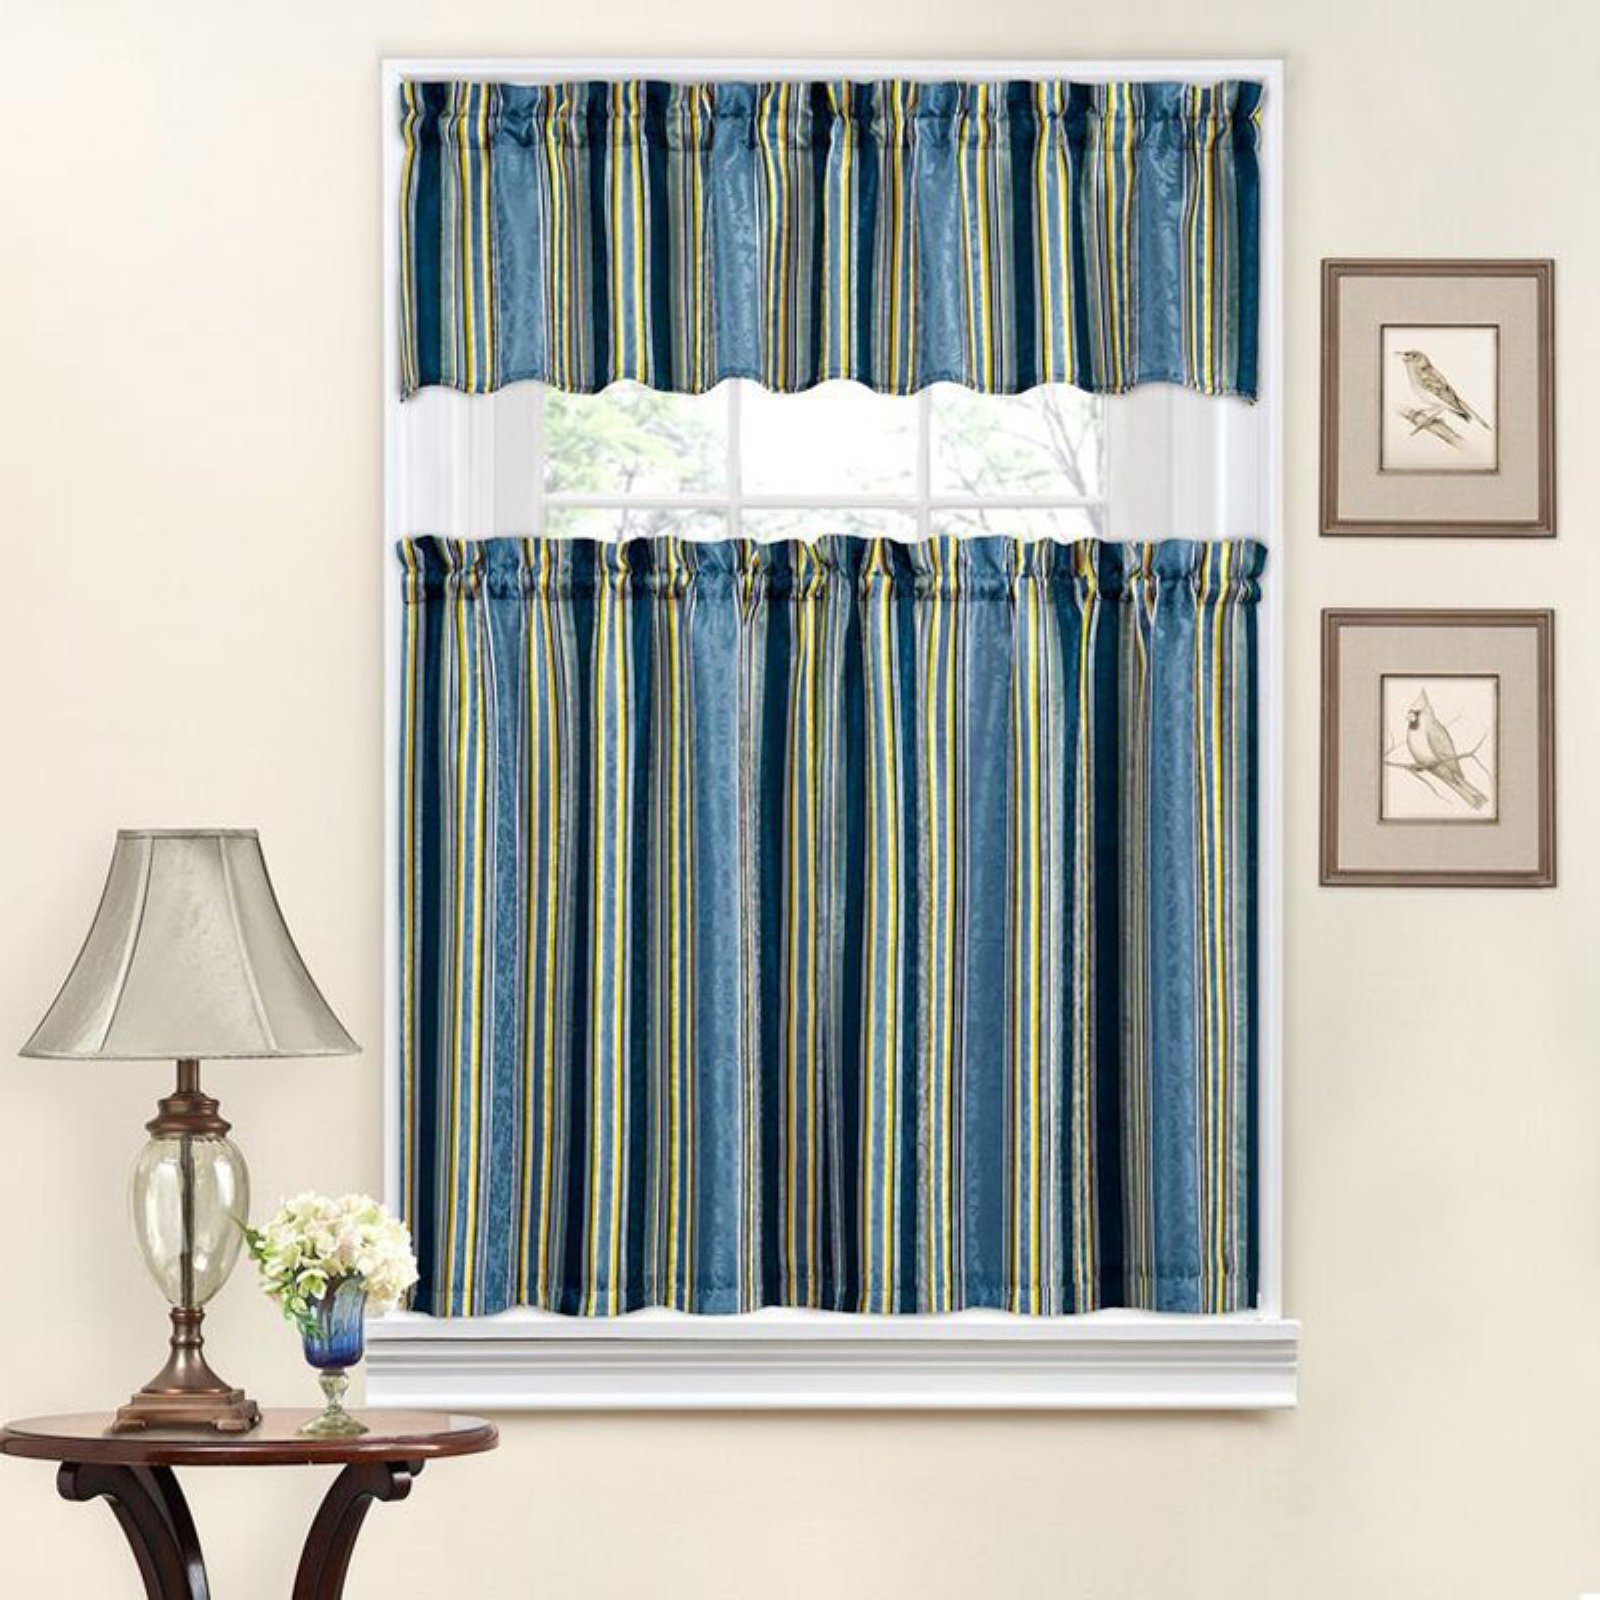 Traditionswaverly Stripe Ensemble Tier And Valance Set With Well Liked Floral Watercolor Semi Sheer Rod Pocket Kitchen Curtain Valance And Tiers Sets (View 16 of 20)